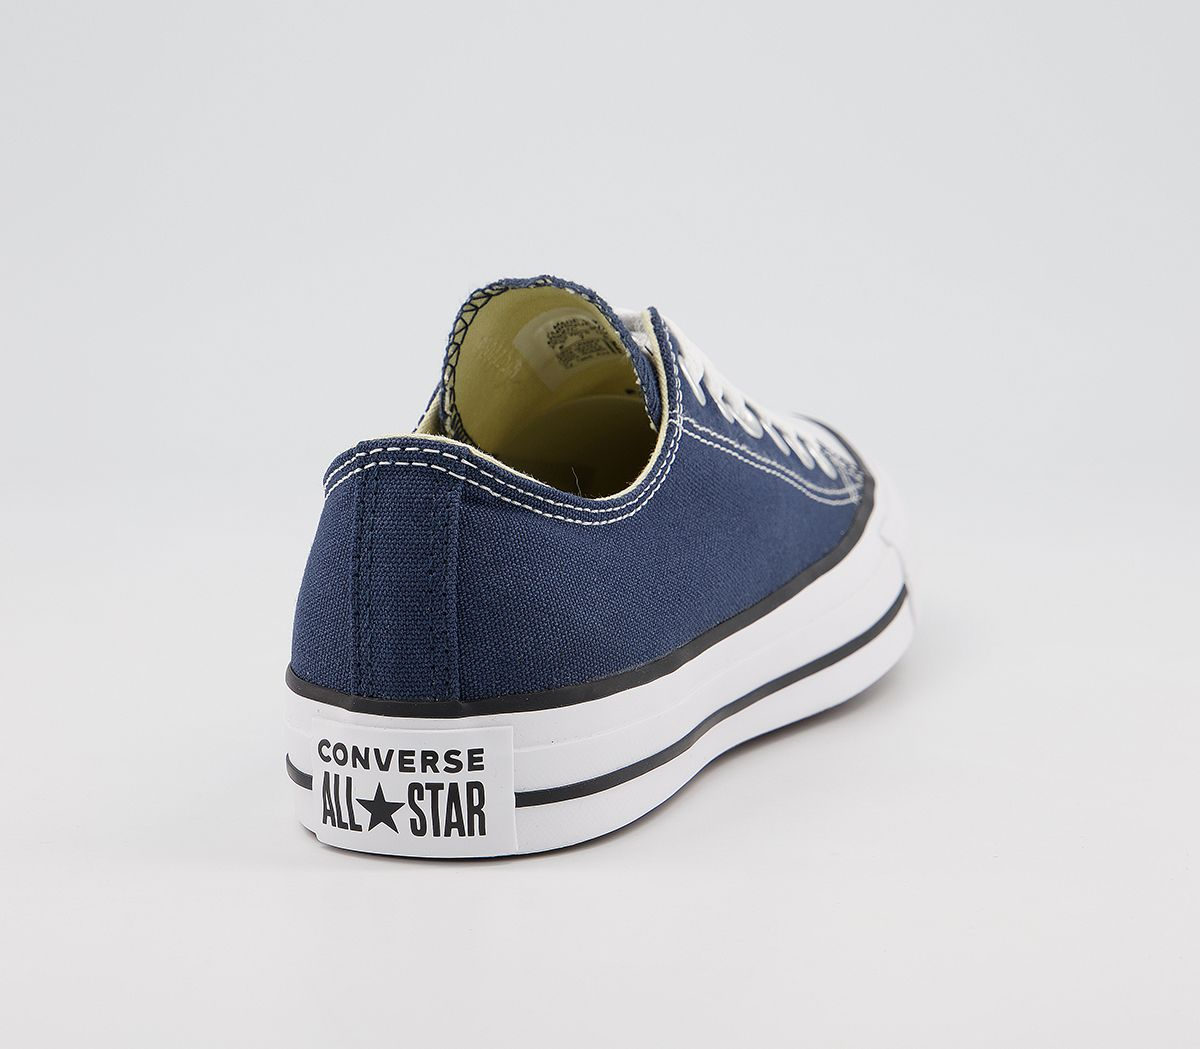 cdde09b99482b7 Converse All Star Low Navy Canvas - Unisex Sports